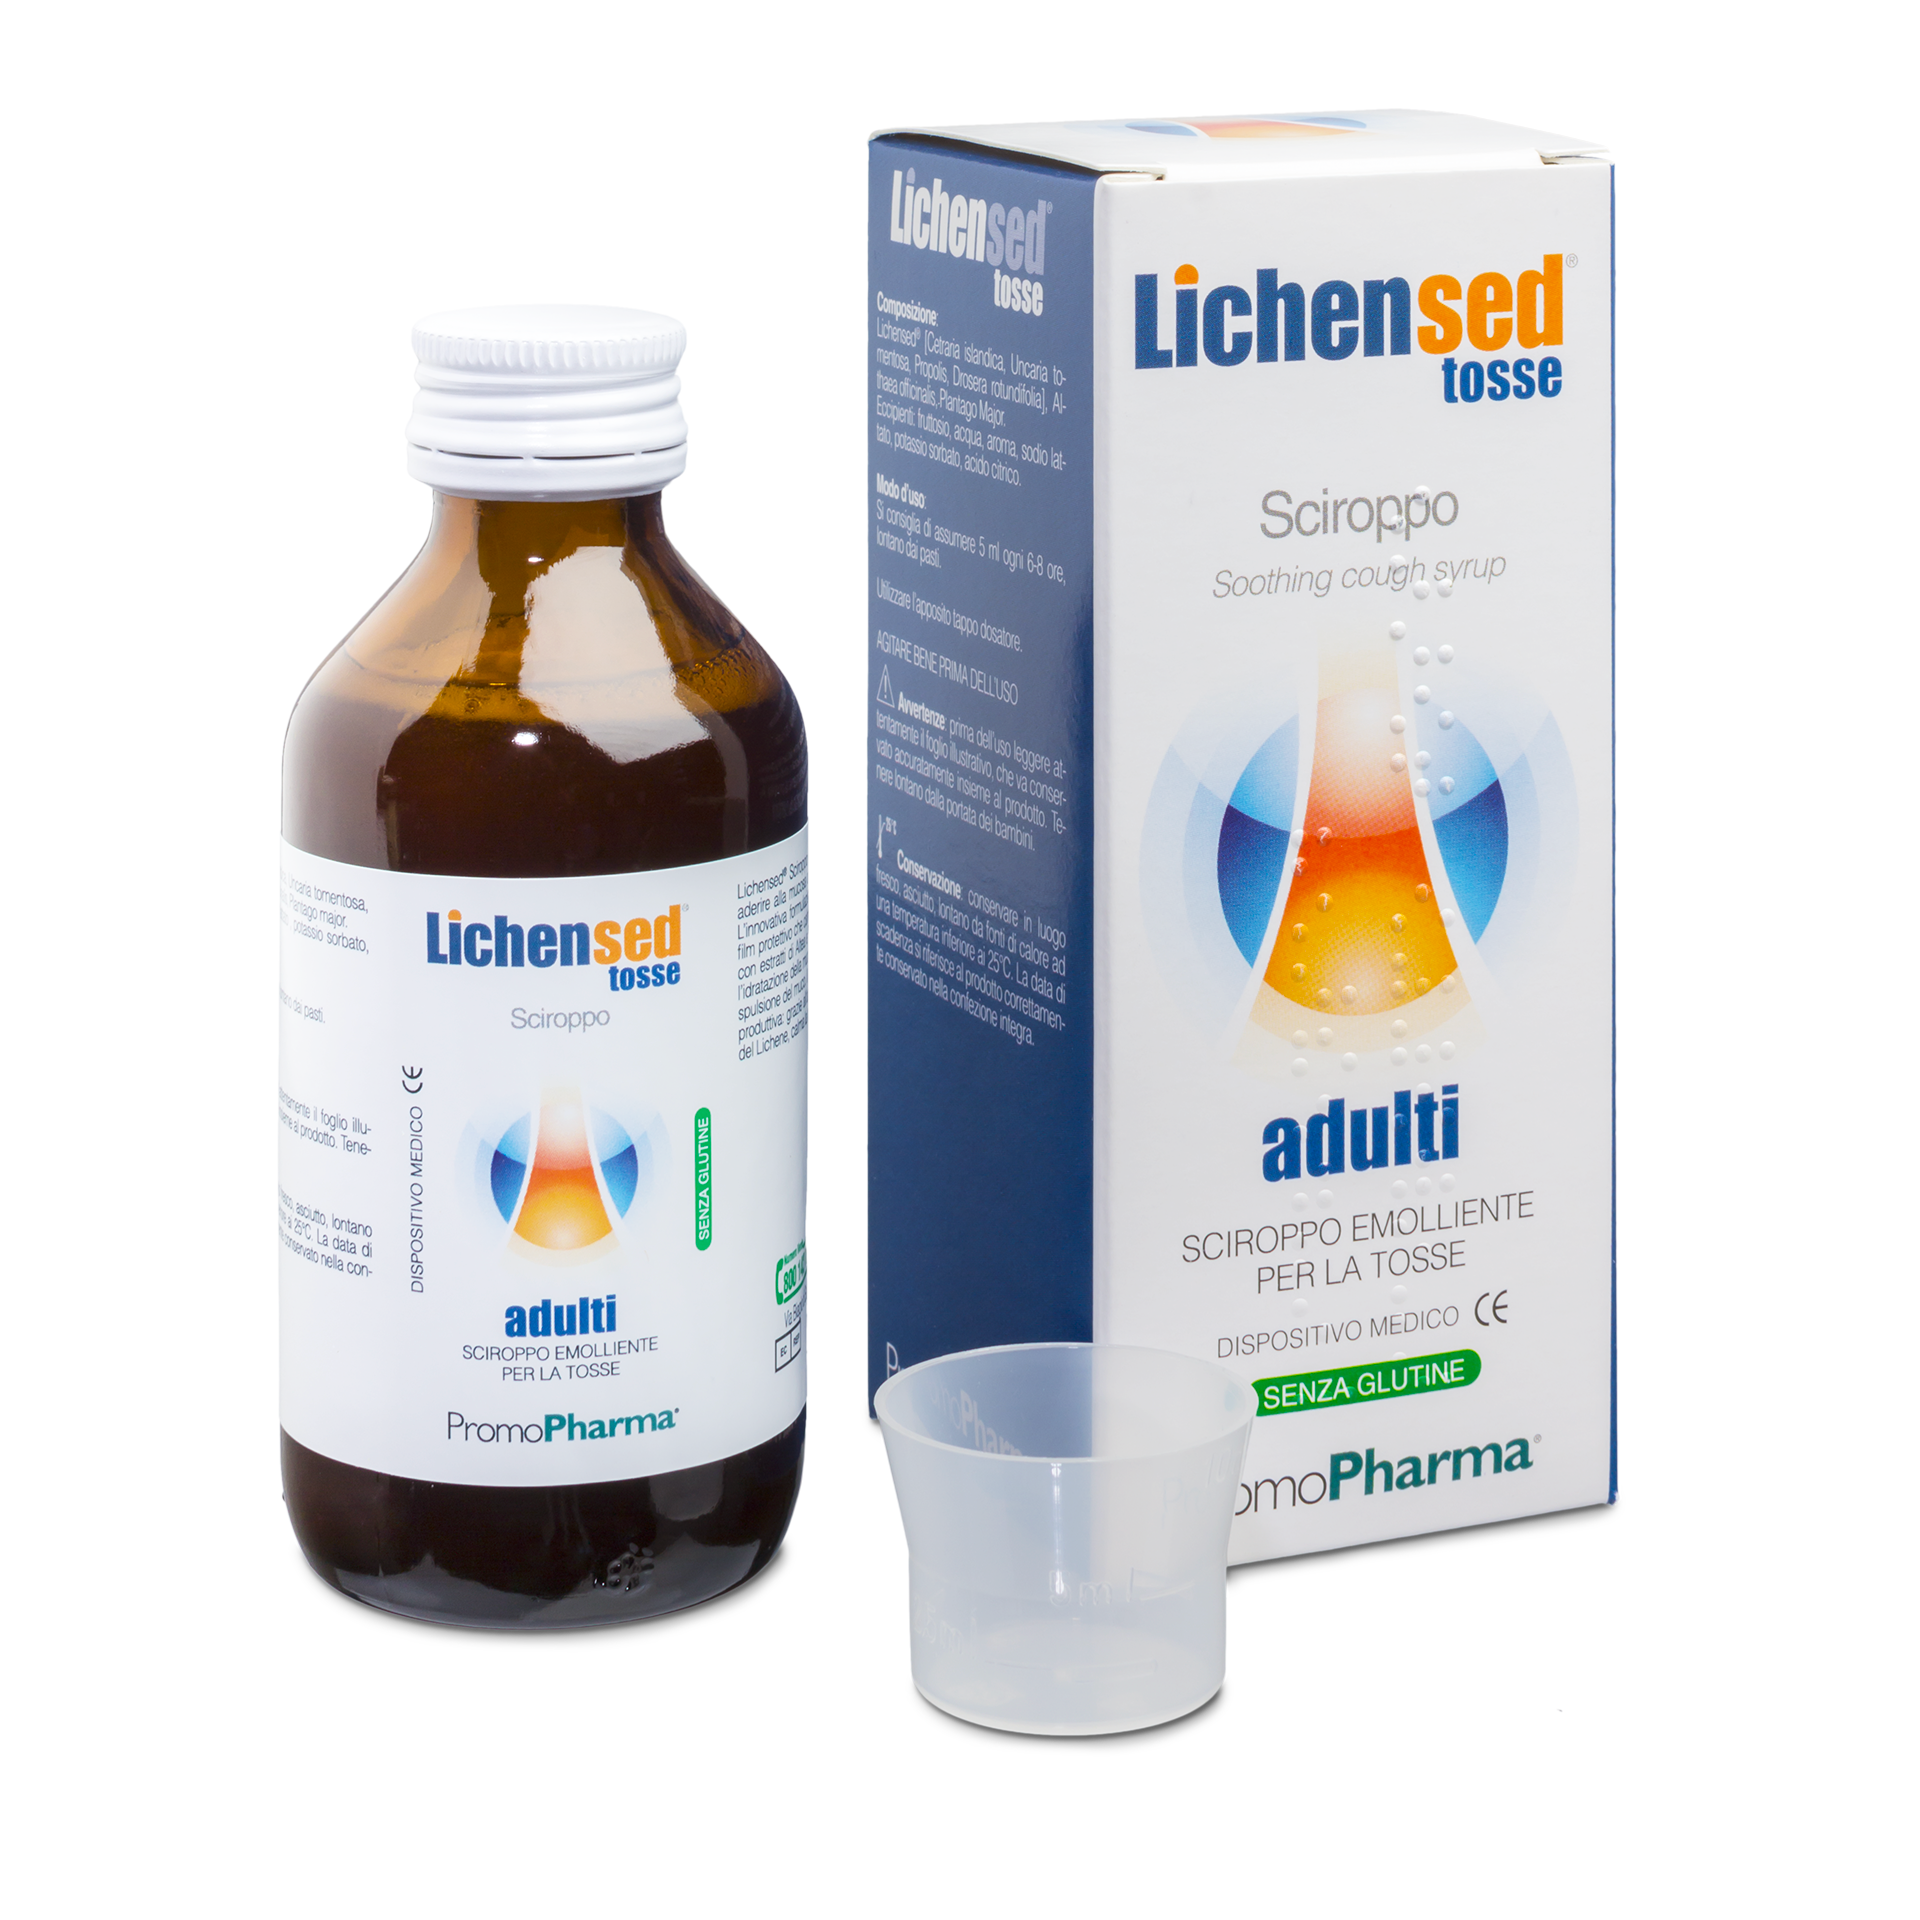 Lichensed® sciroppo adulti